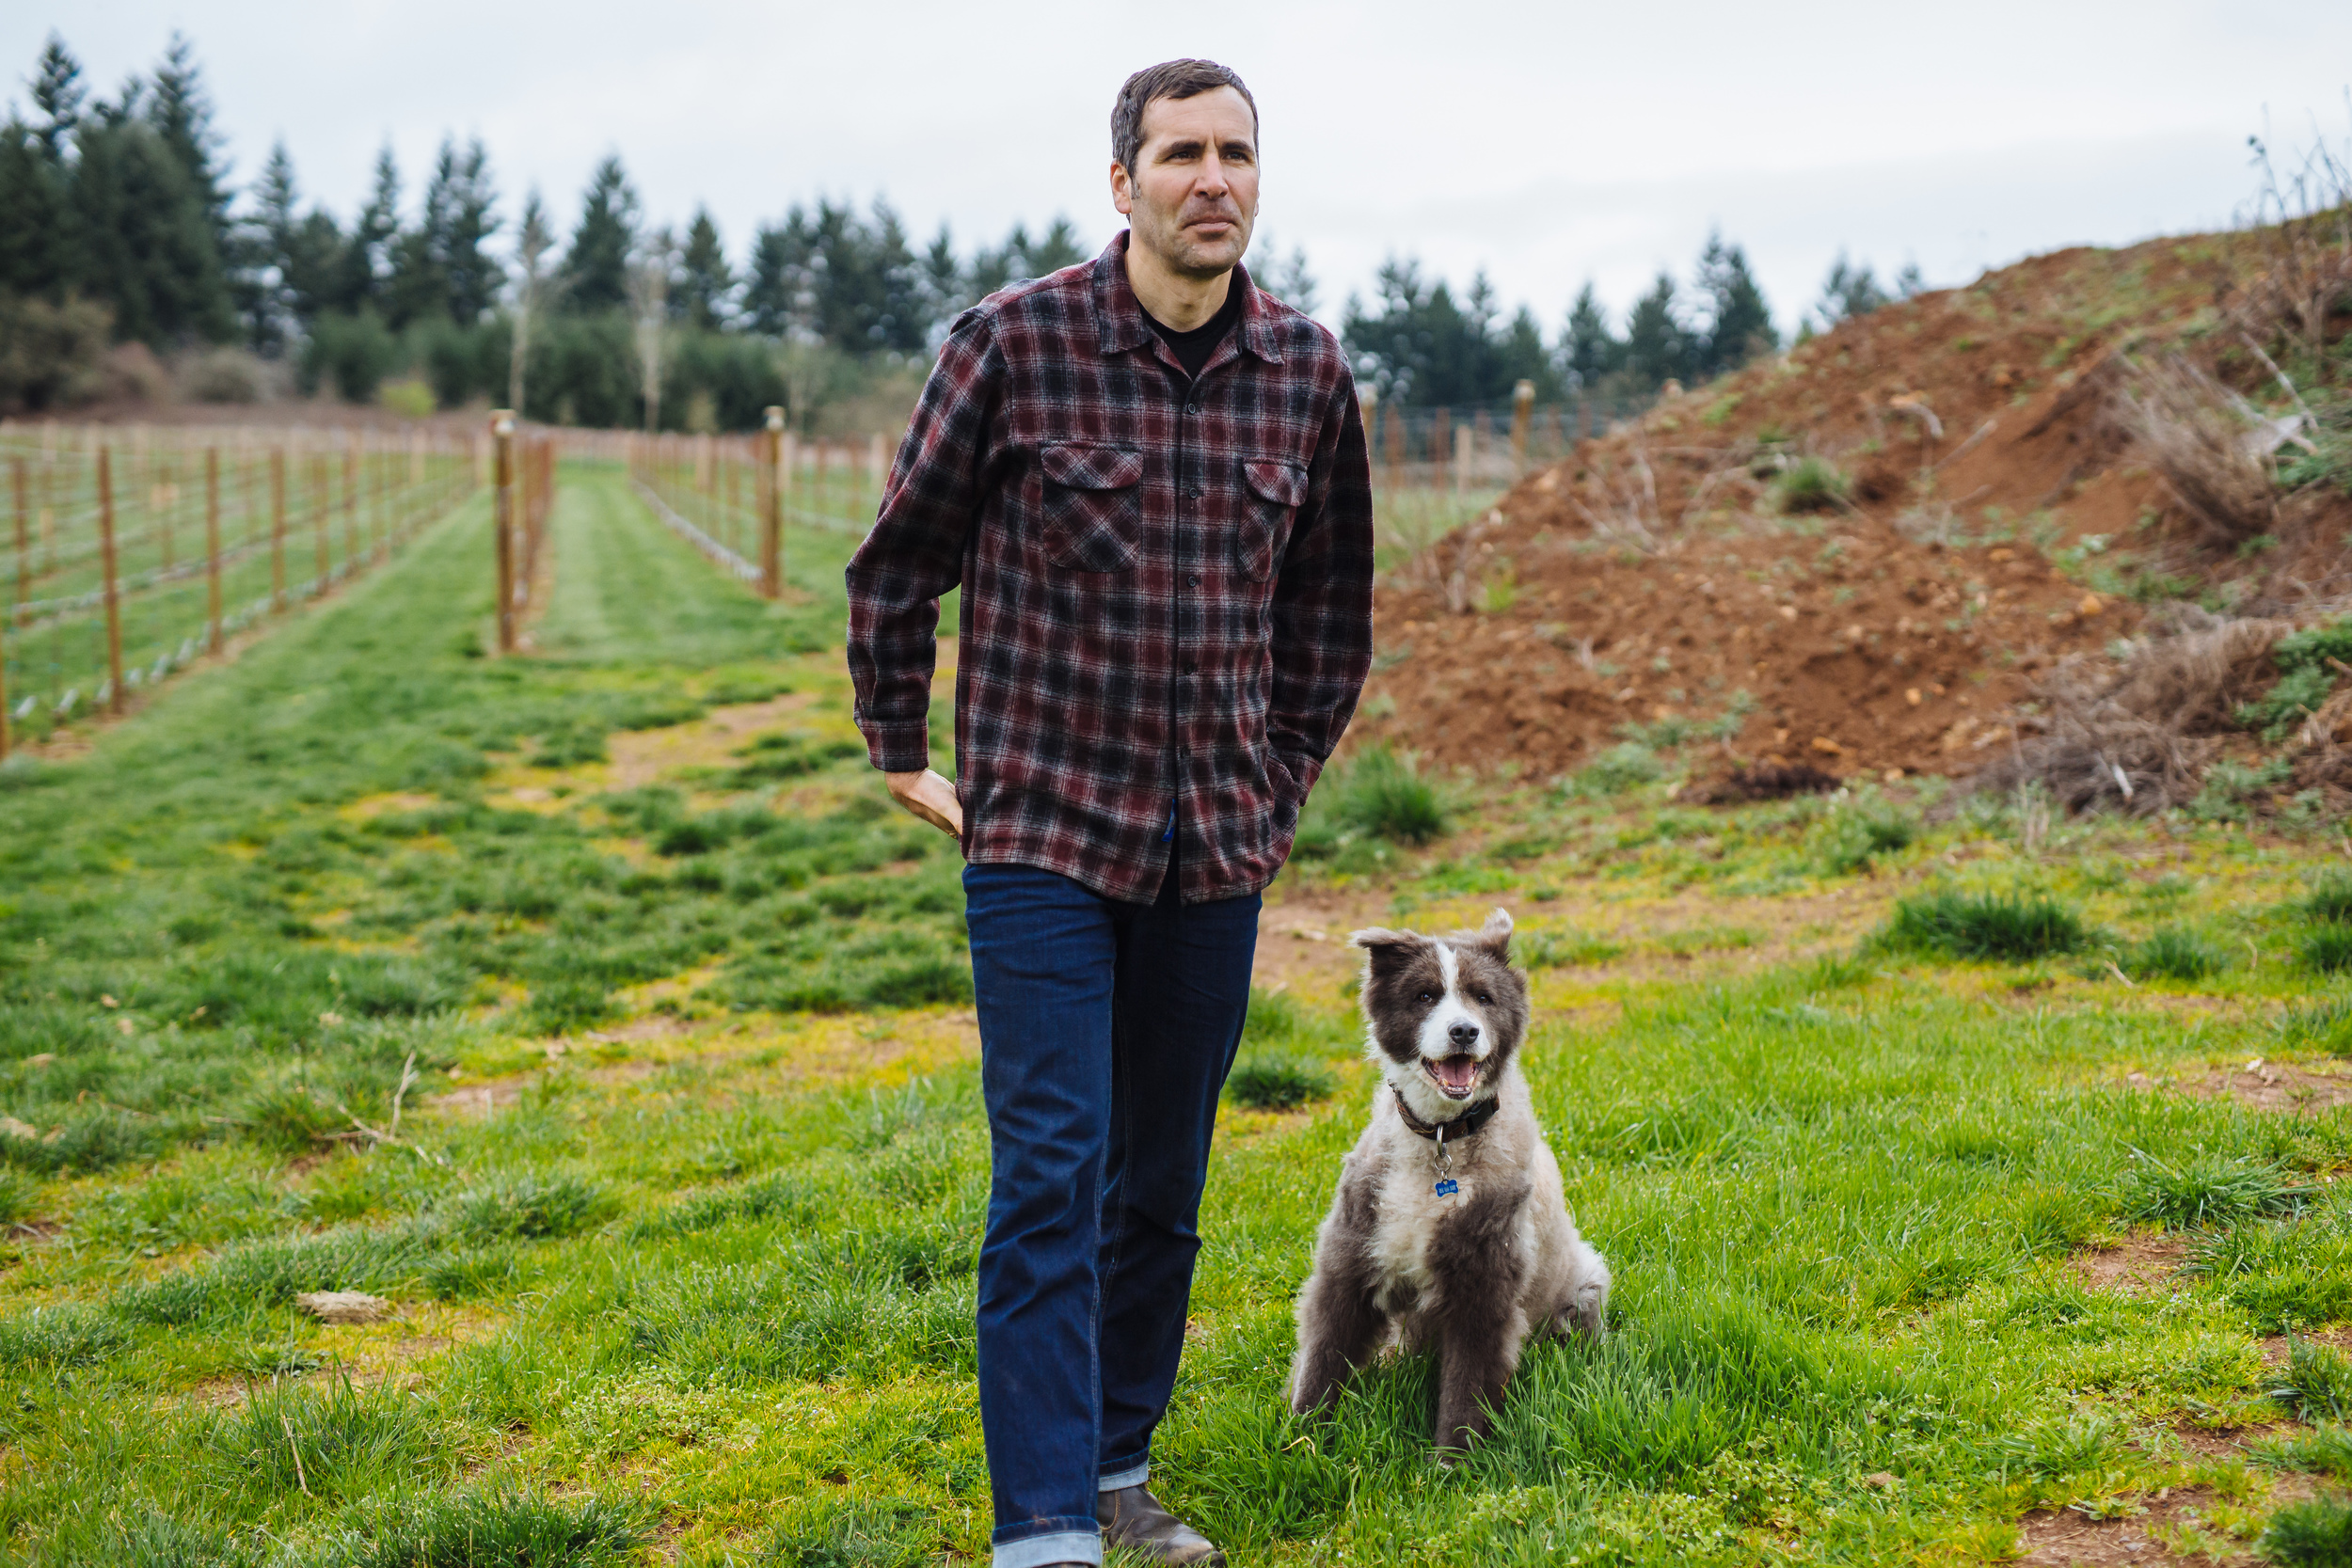 GC John & dog in vineyard.JPG